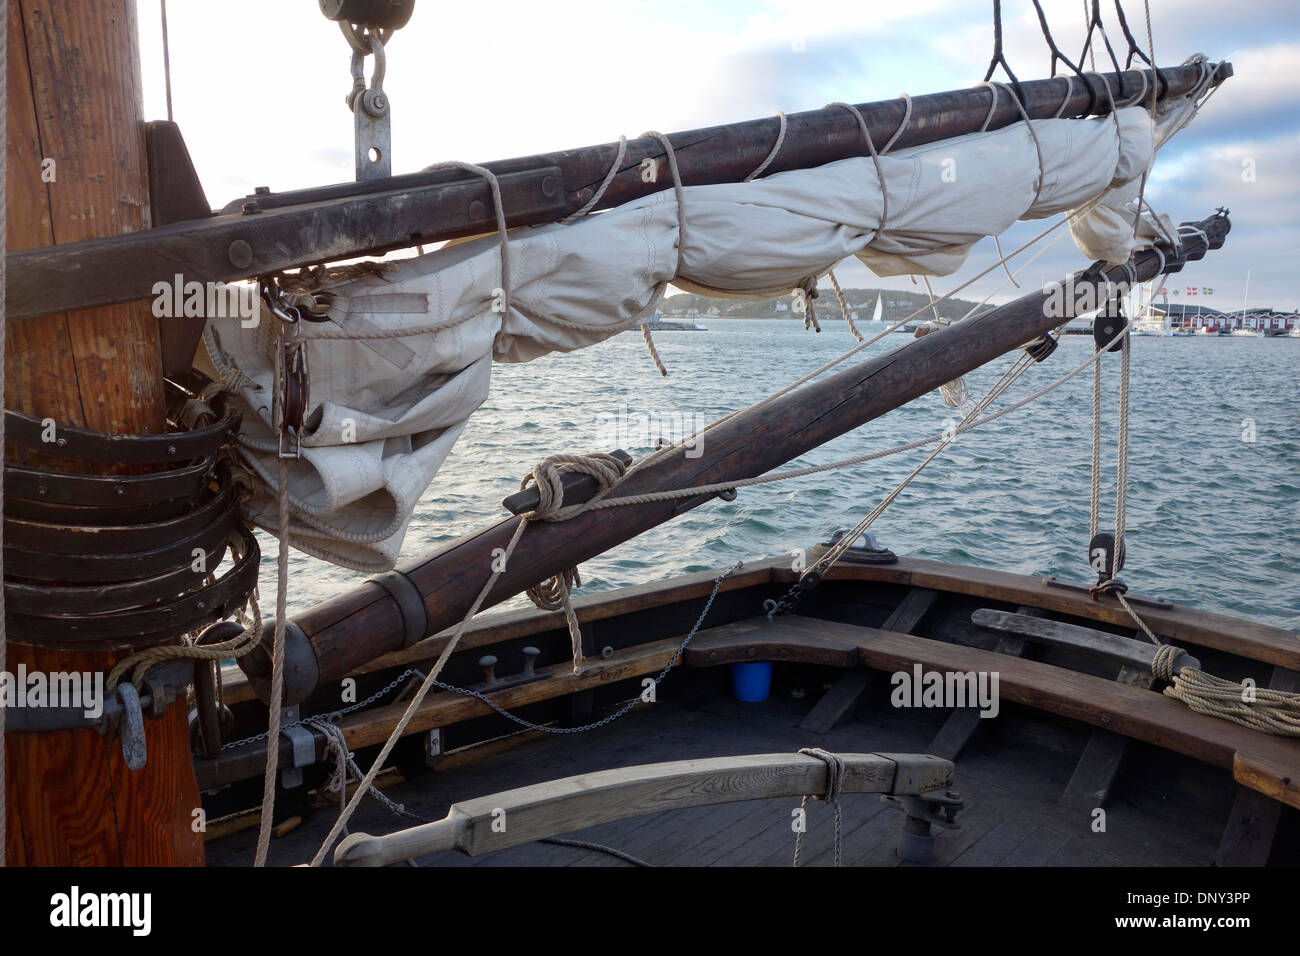 Schooner's stern with details of mizzen mast, boom, gaff and folded spanker sail with luff and mast hoops. - Stock Image